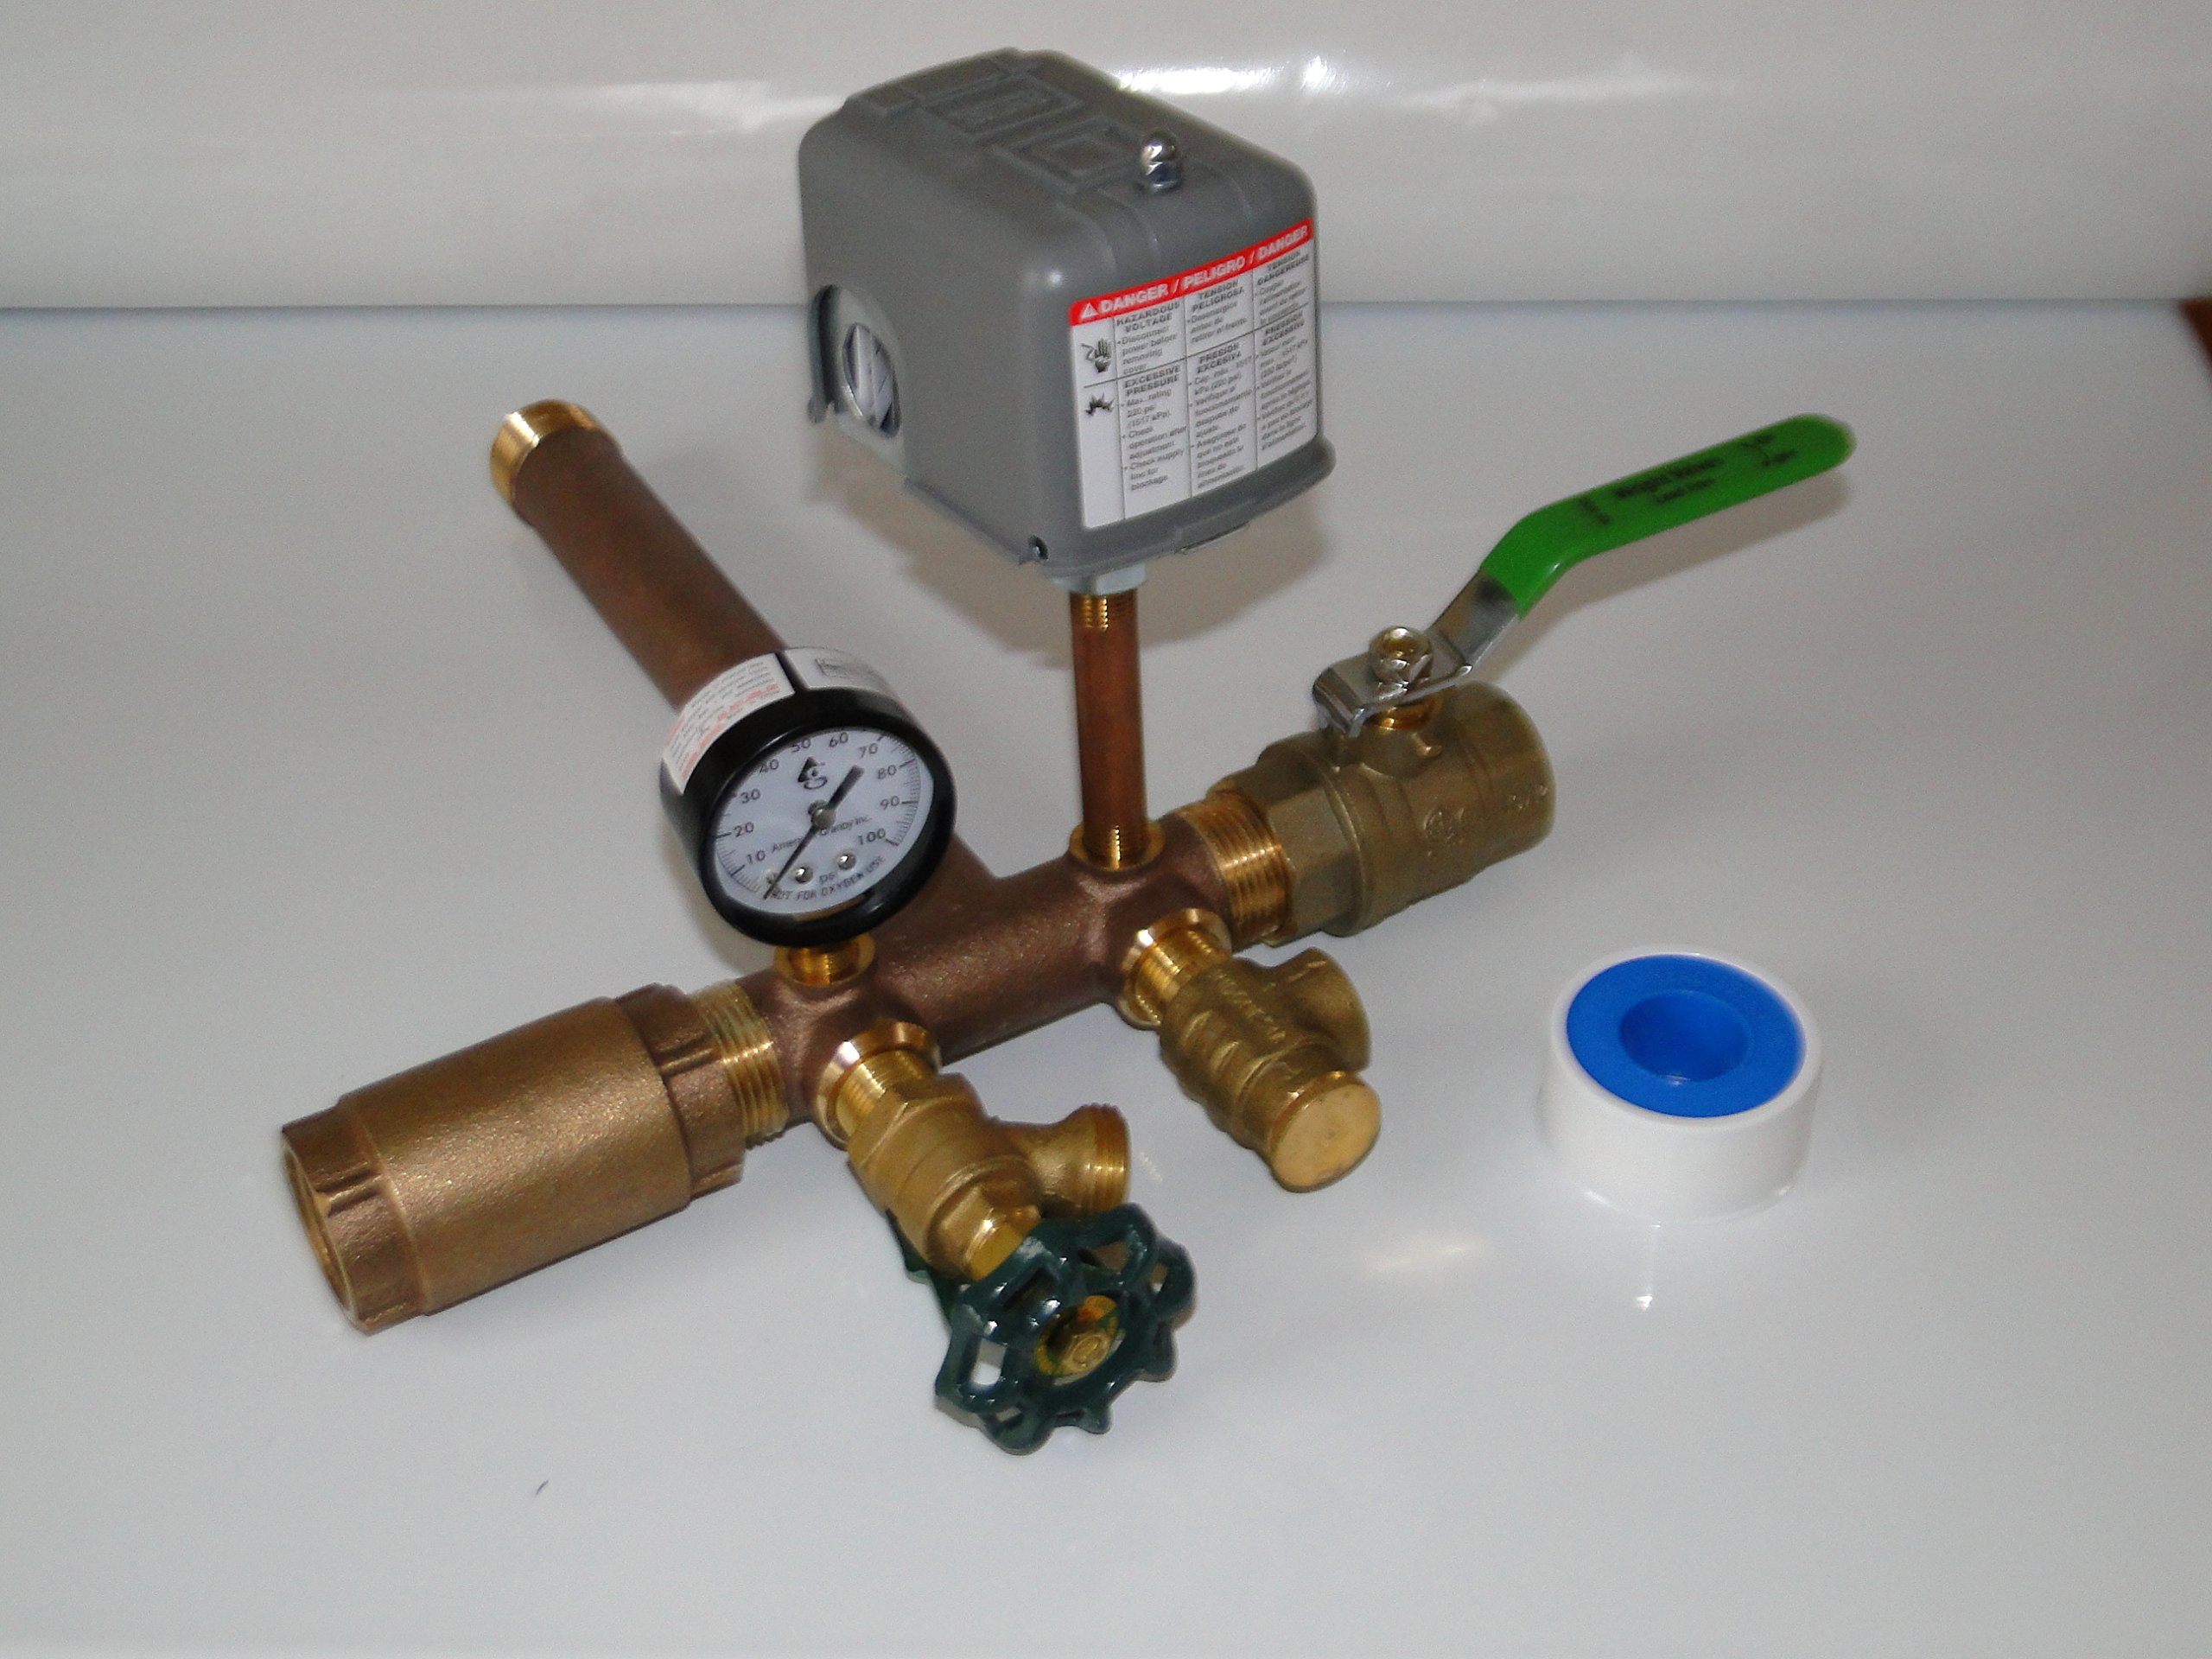 Plumb Eeze by Boshart 1 x 11 Tank Tee Kit with VALVES Installation Water Well Pressure Tank 30/50 FSG2 pressure switch NO LEAD